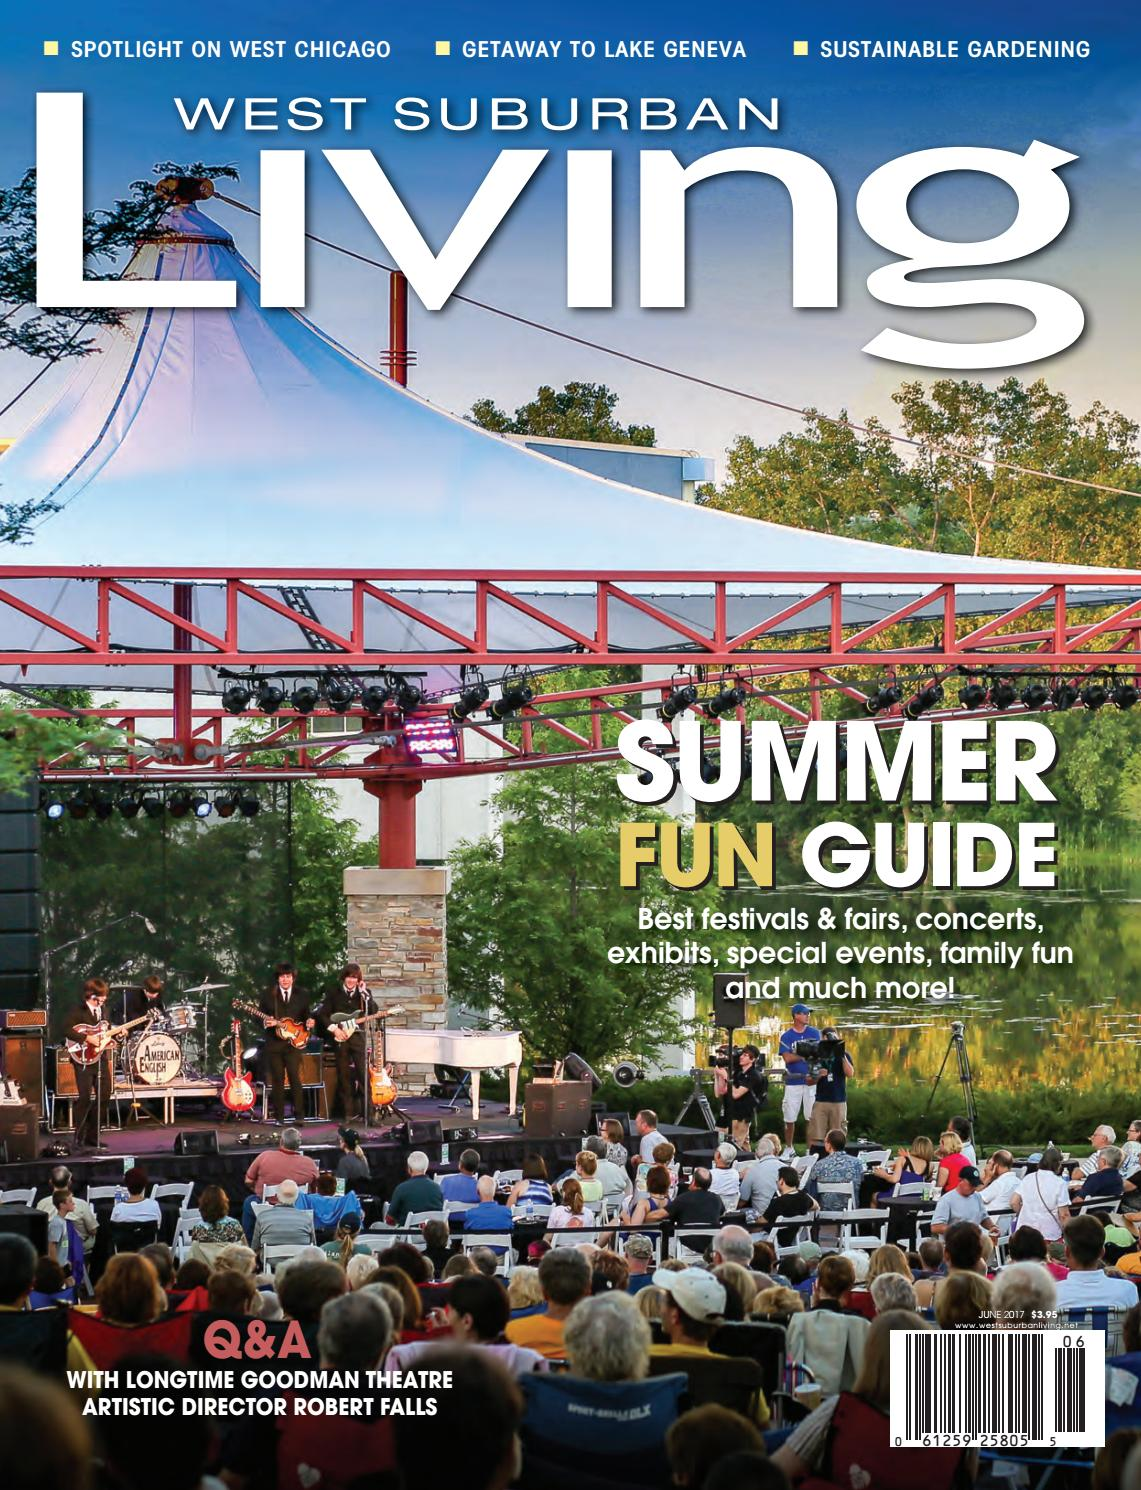 West Suburban Living June 2017 By Magazine Issuu Switch Gear Club Unlimited English Pal Games